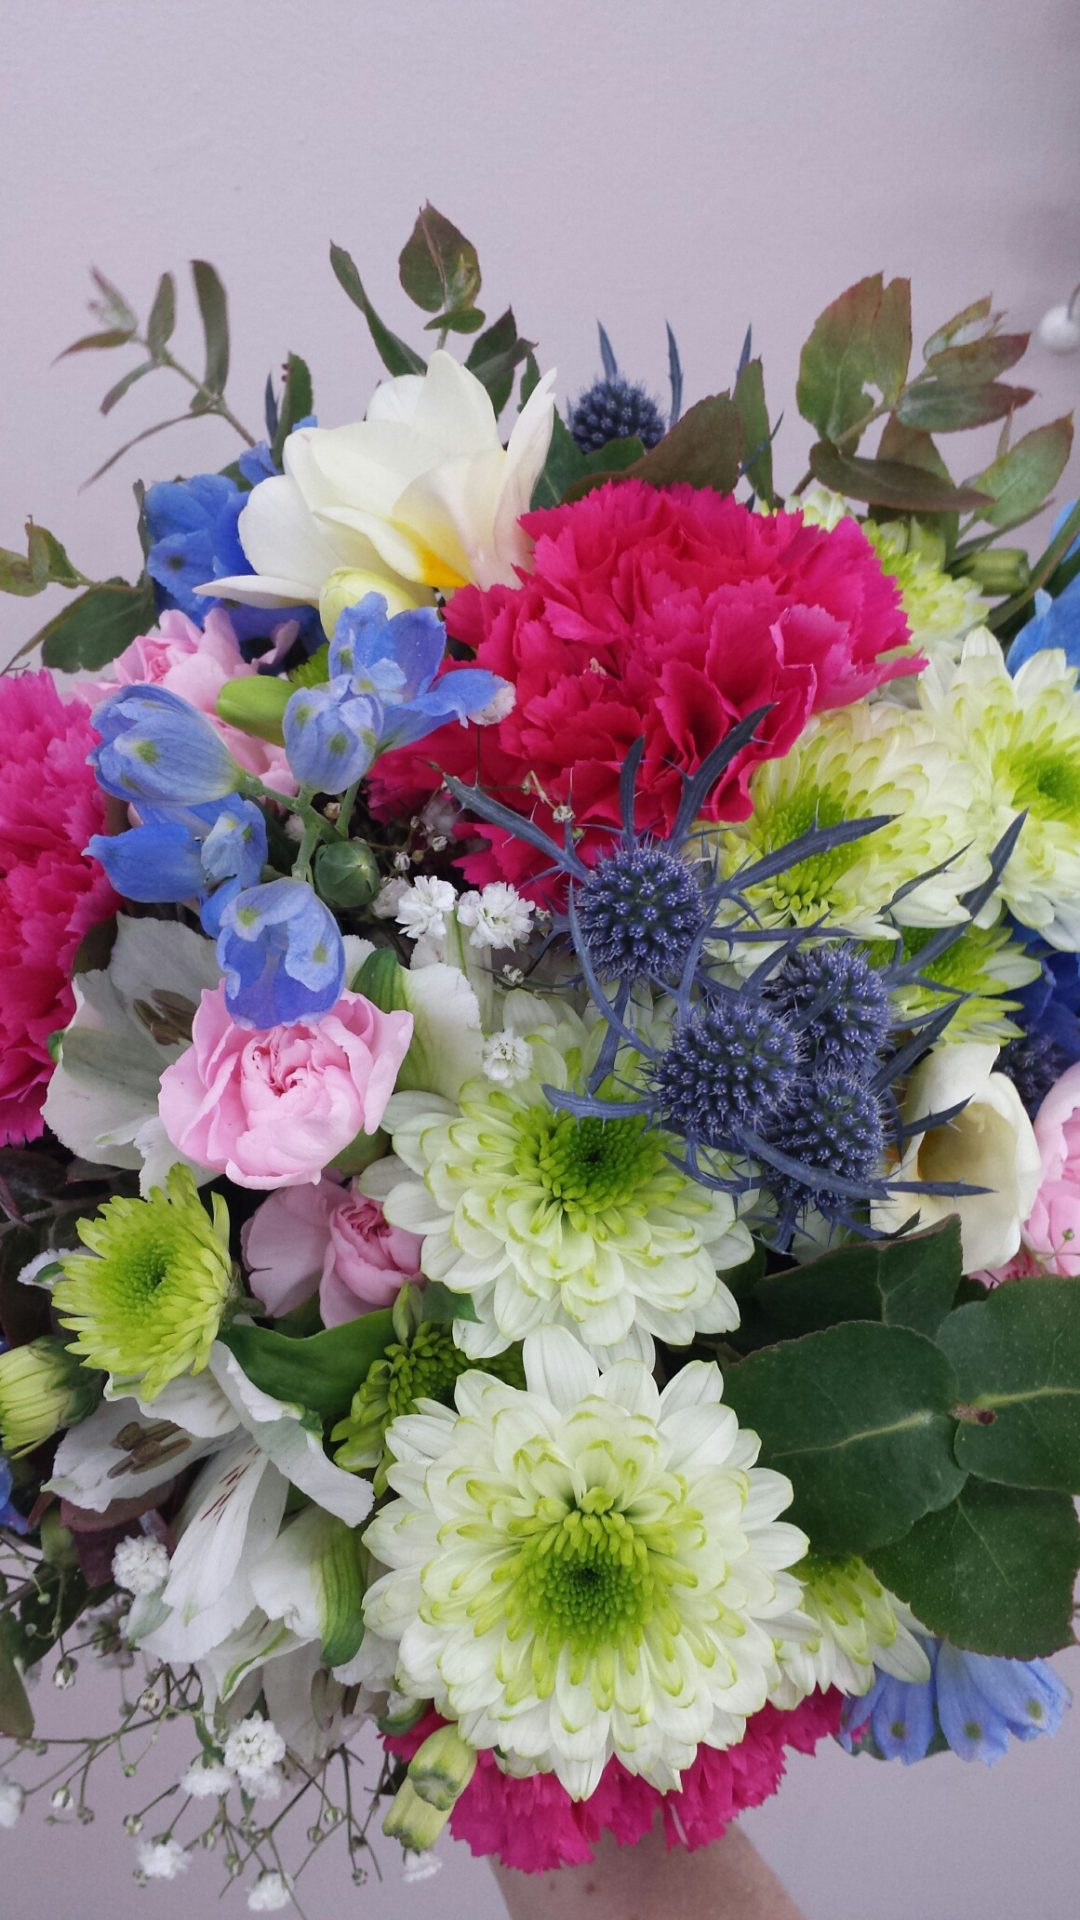 garden-style-daisy-seaholly-roses-gyp-and-delphinium